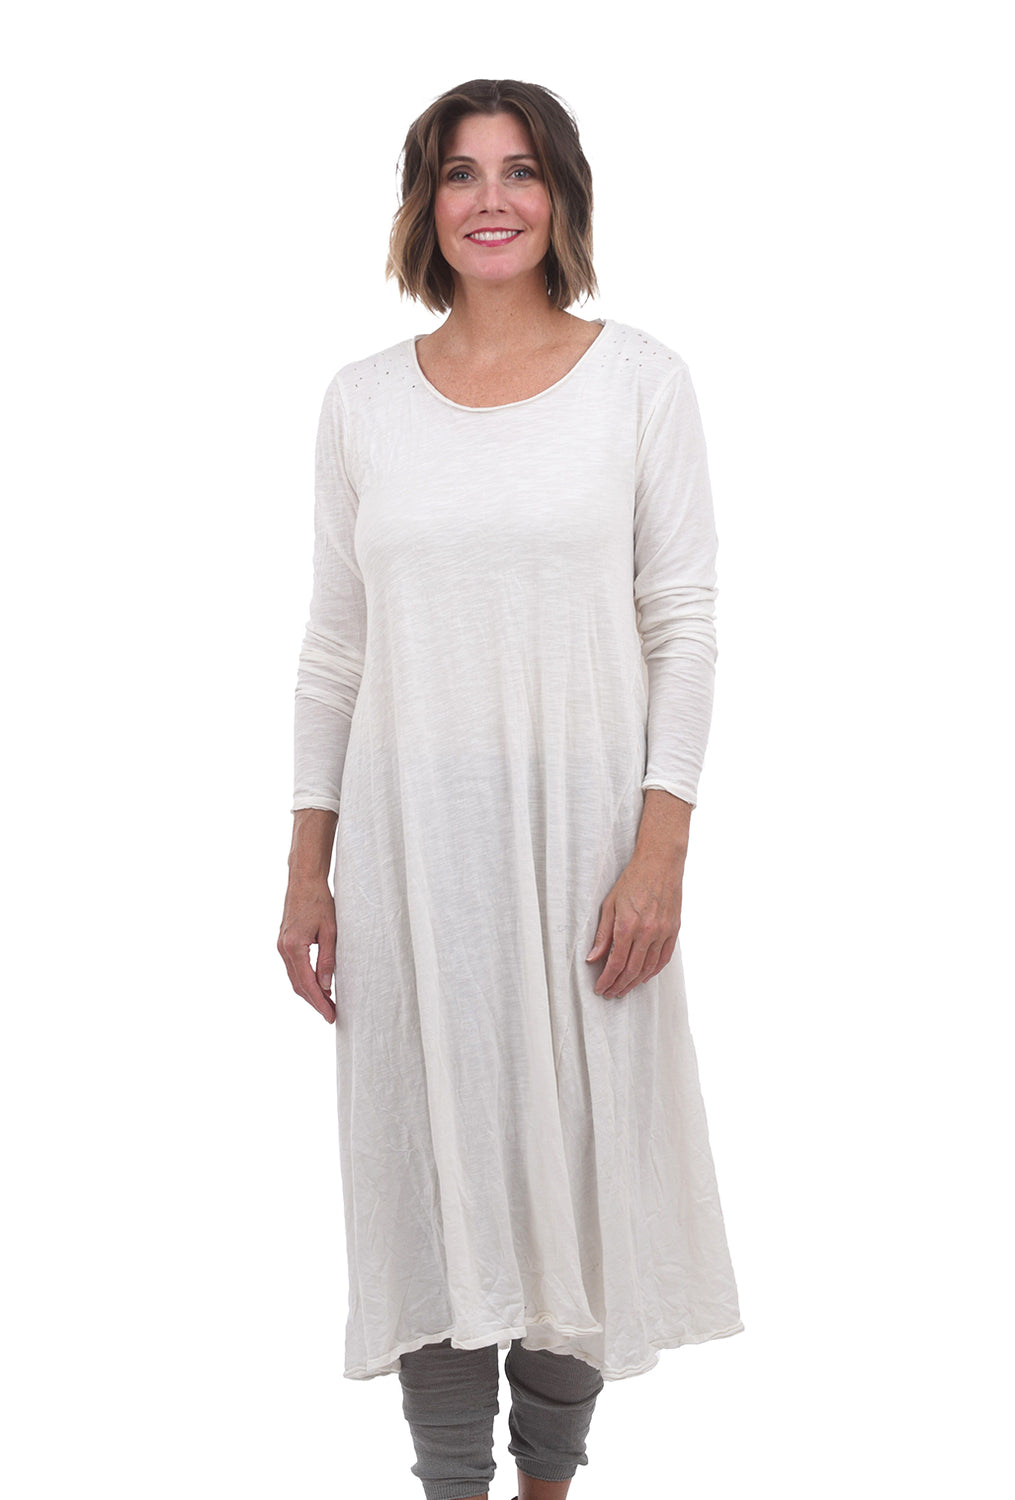 Magnolia Pearl L/S Jersey MP Dress, True Off-White One Size Off-White